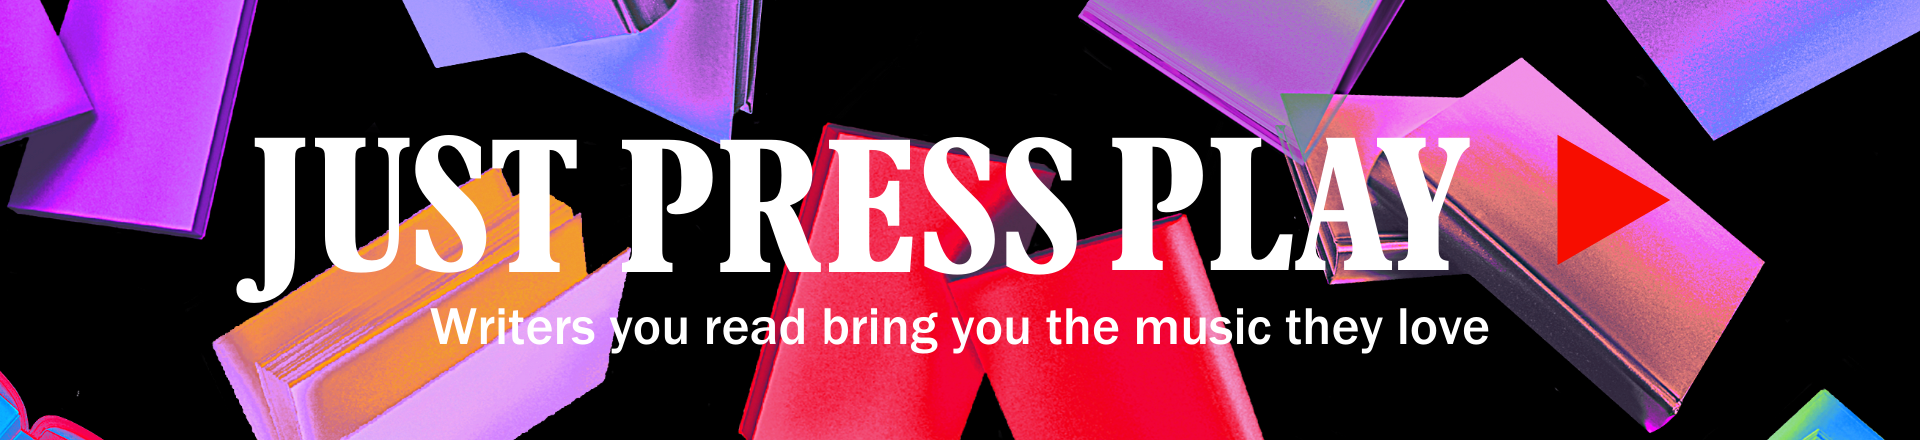 Just Press Play: Writers you read bring you the music they love